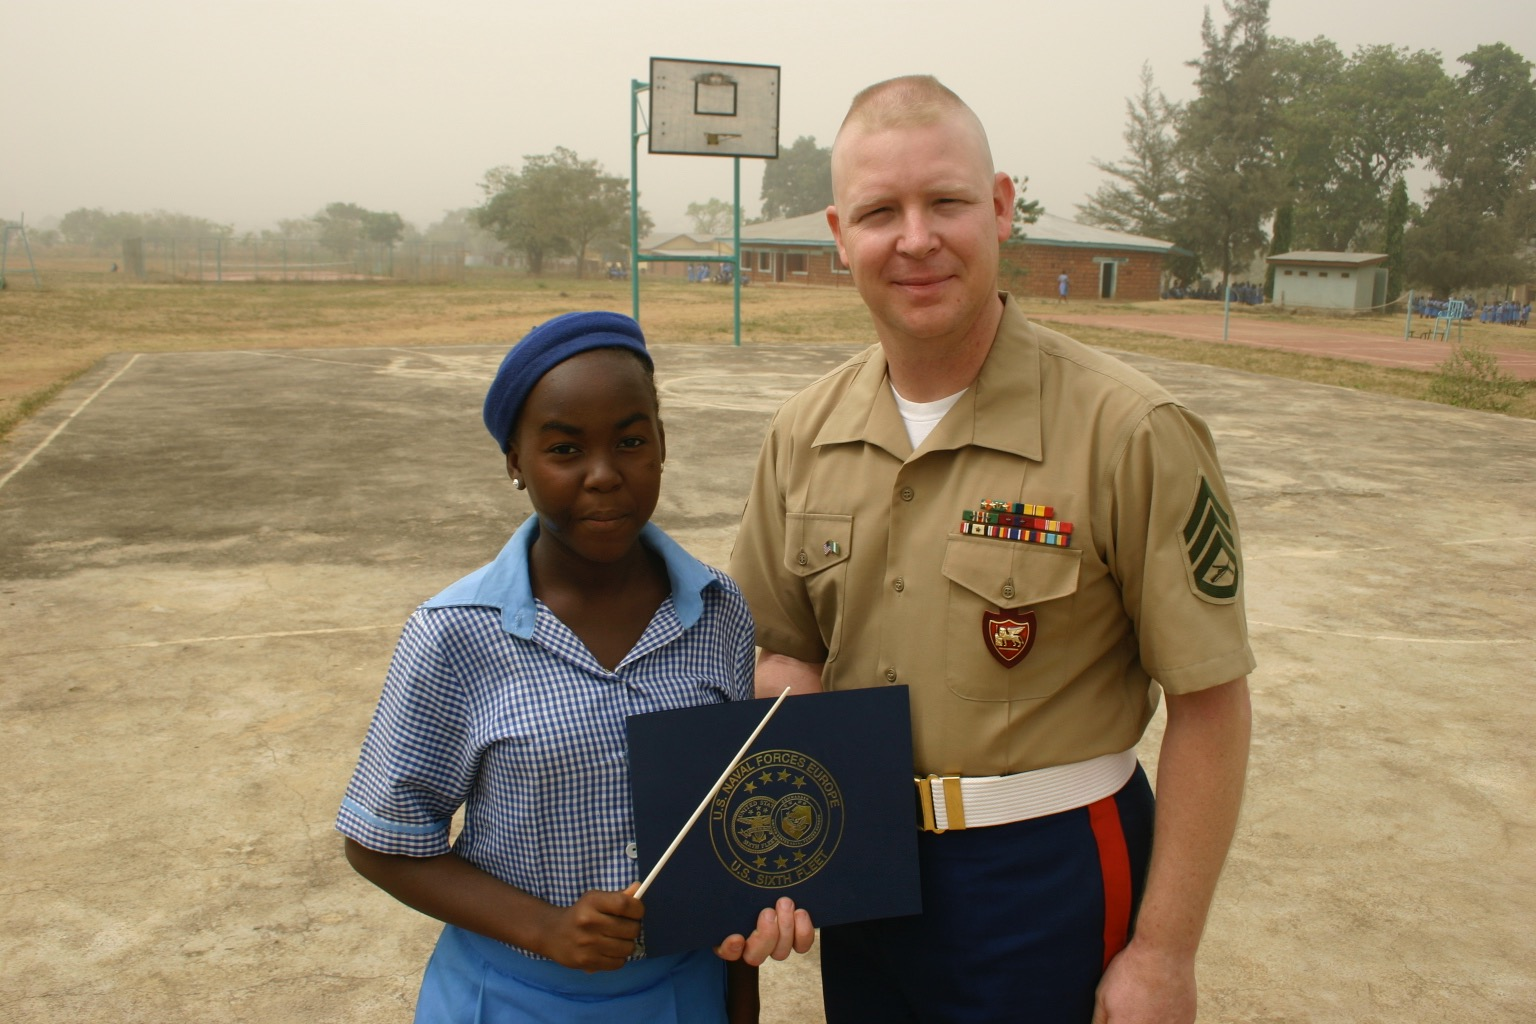 Taken at the Government Girls School outside Abuja, Nigeria after our performance. This young lady was our guest conductor. circa 2009.